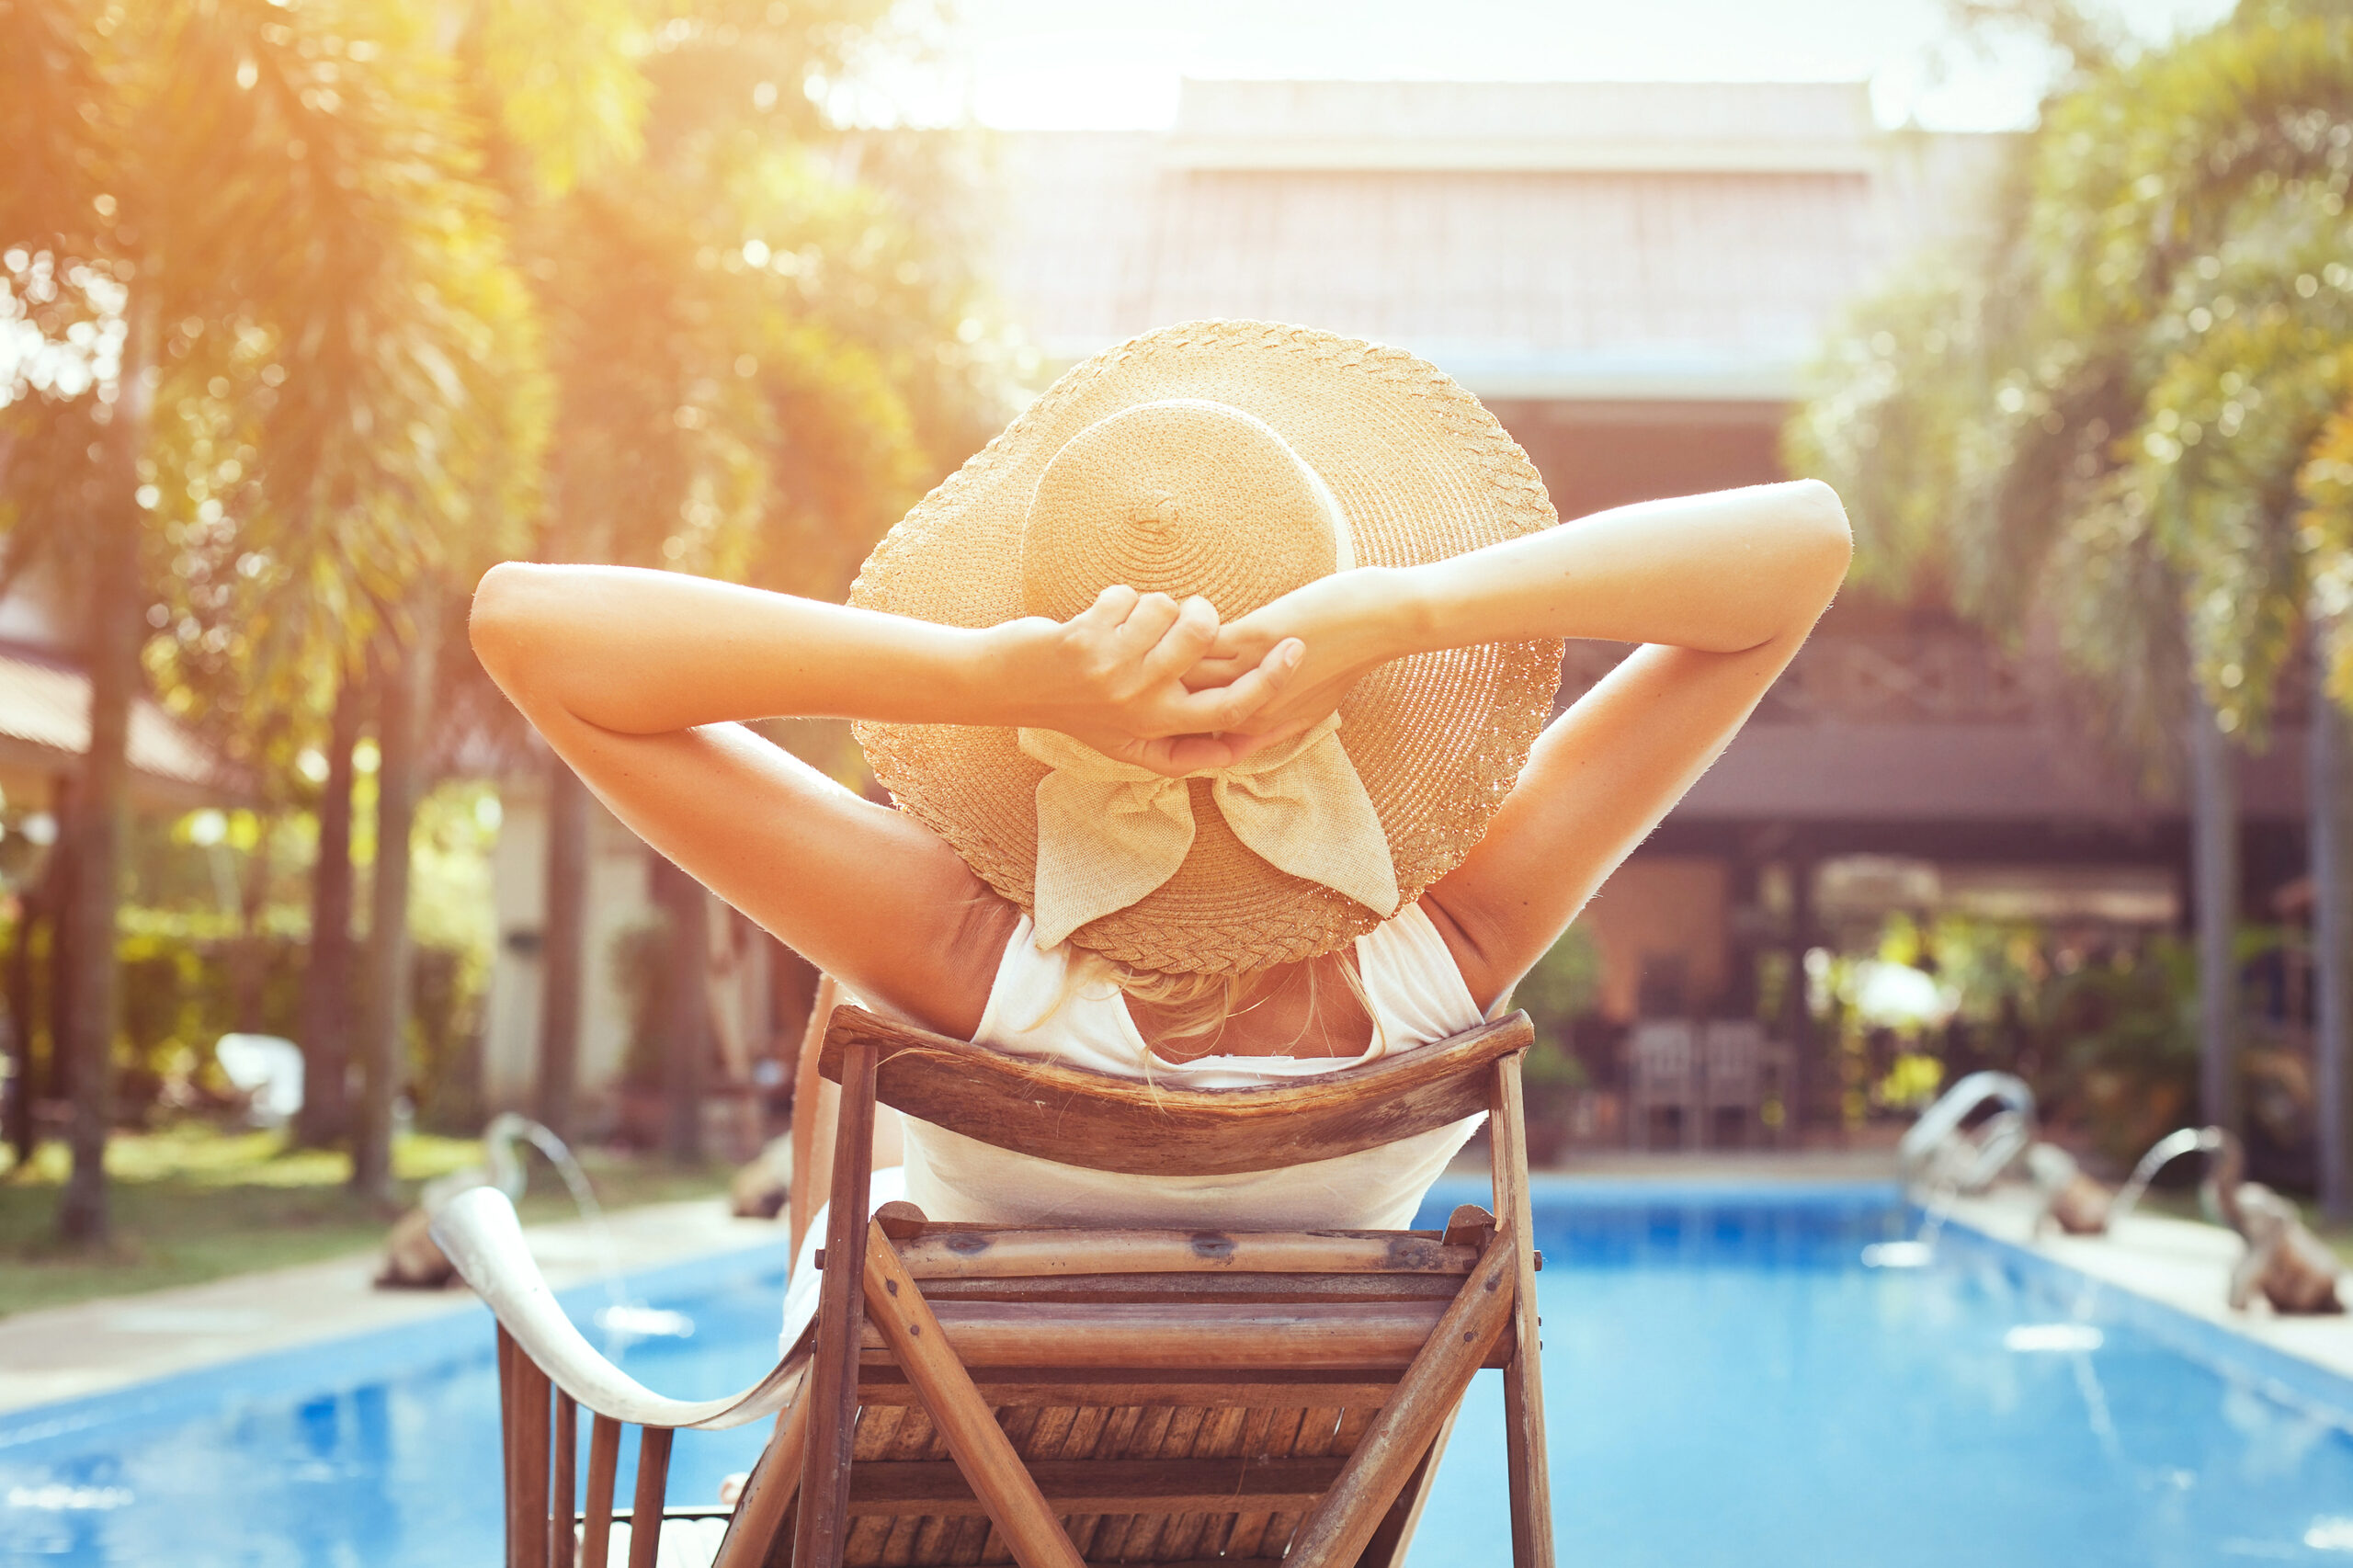 Plan for a vacation that really relaxes you